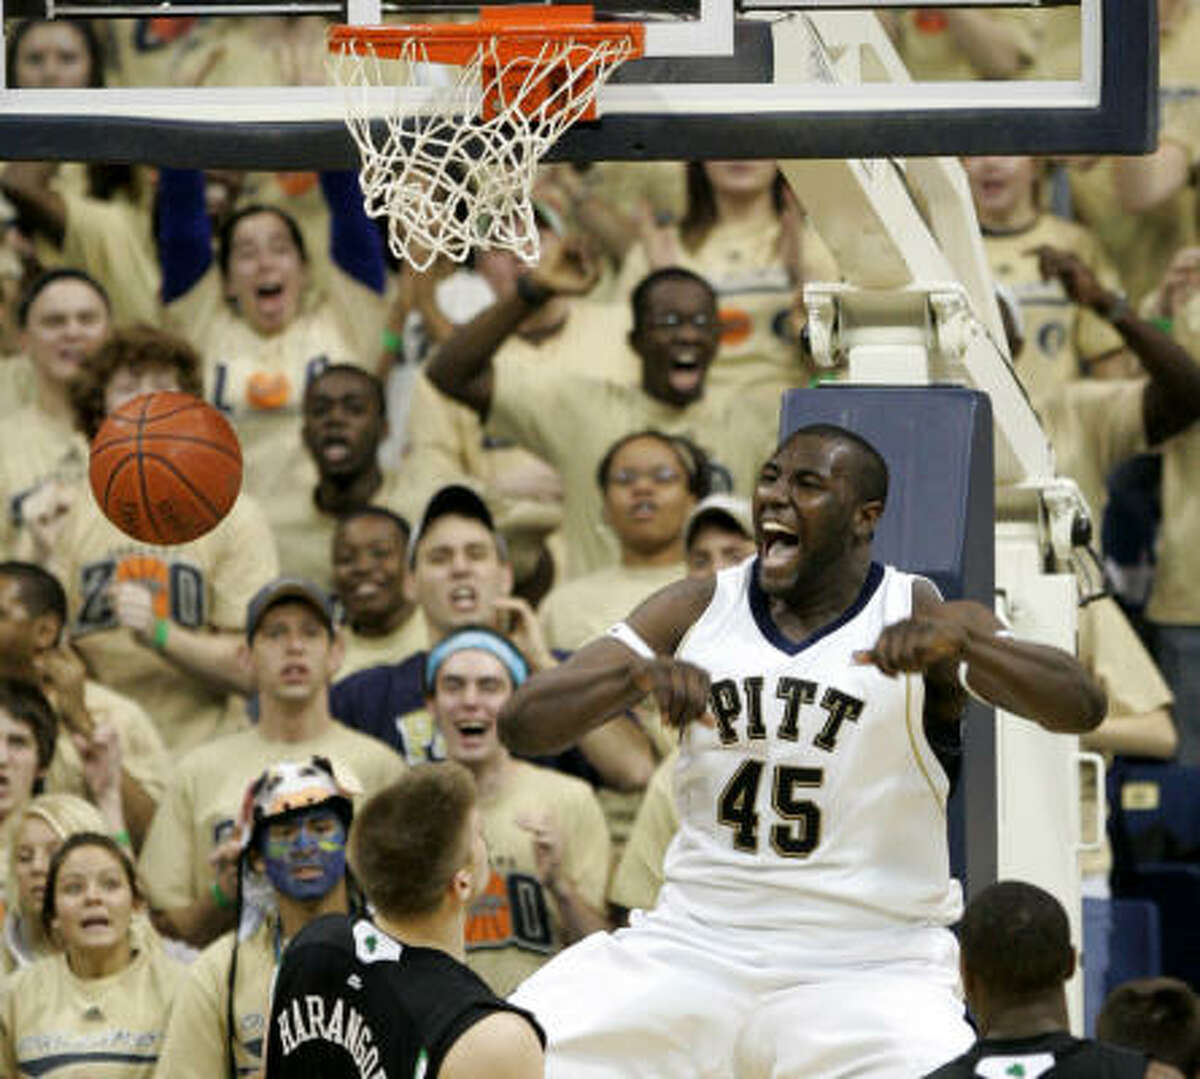 DeJuan Blair, F, Pittsburgh Very productive big at college level; elite rebounder; competitive kid; very successful run at Pitt; position is still in question; great motor, physicality.